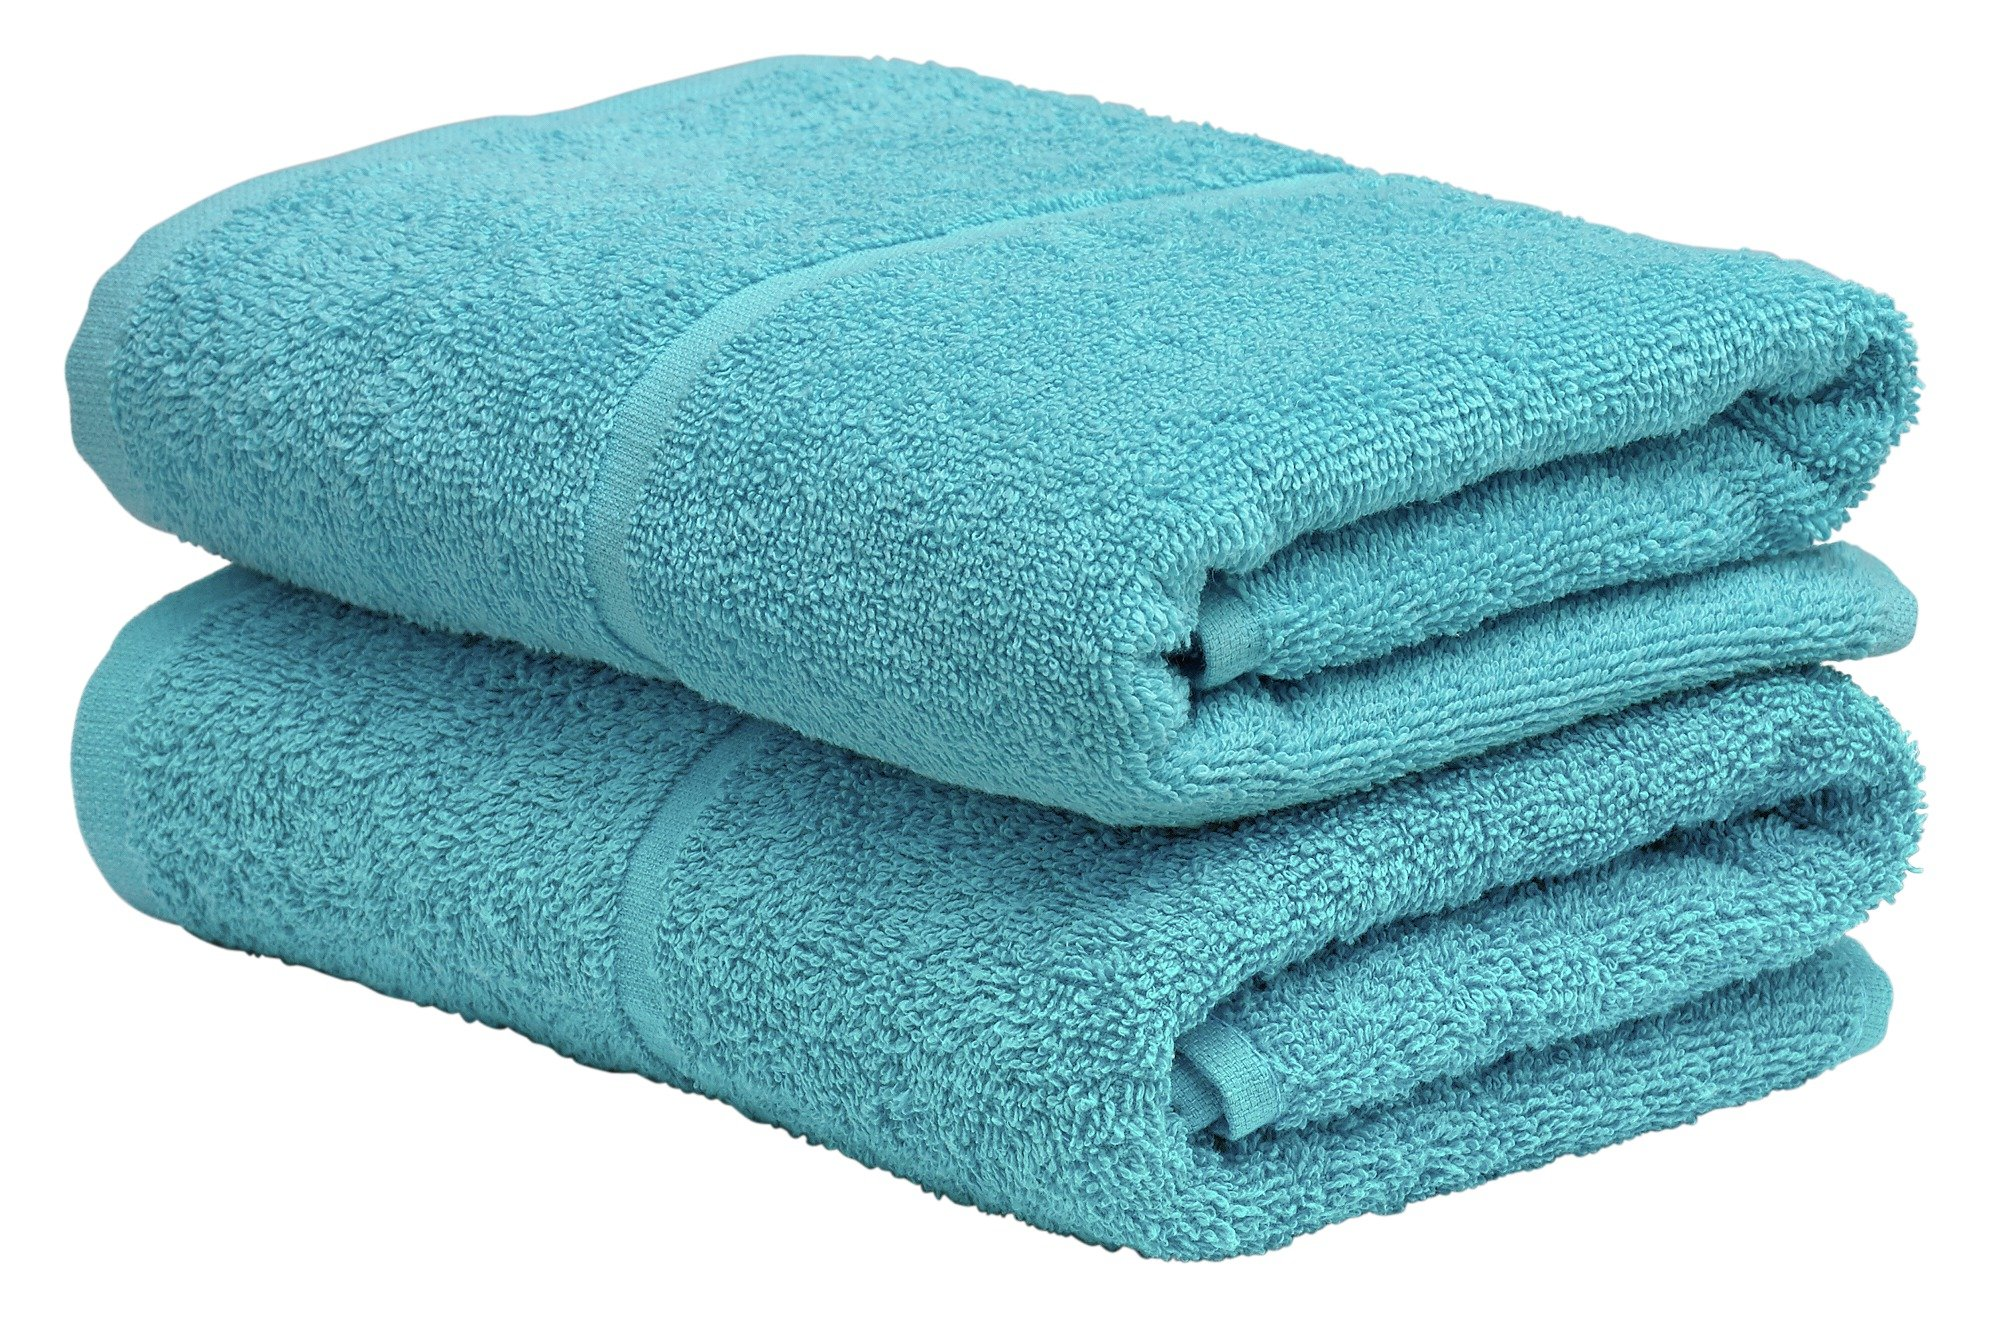 Argos Home Pair of Hand Towels - Crystal Blue